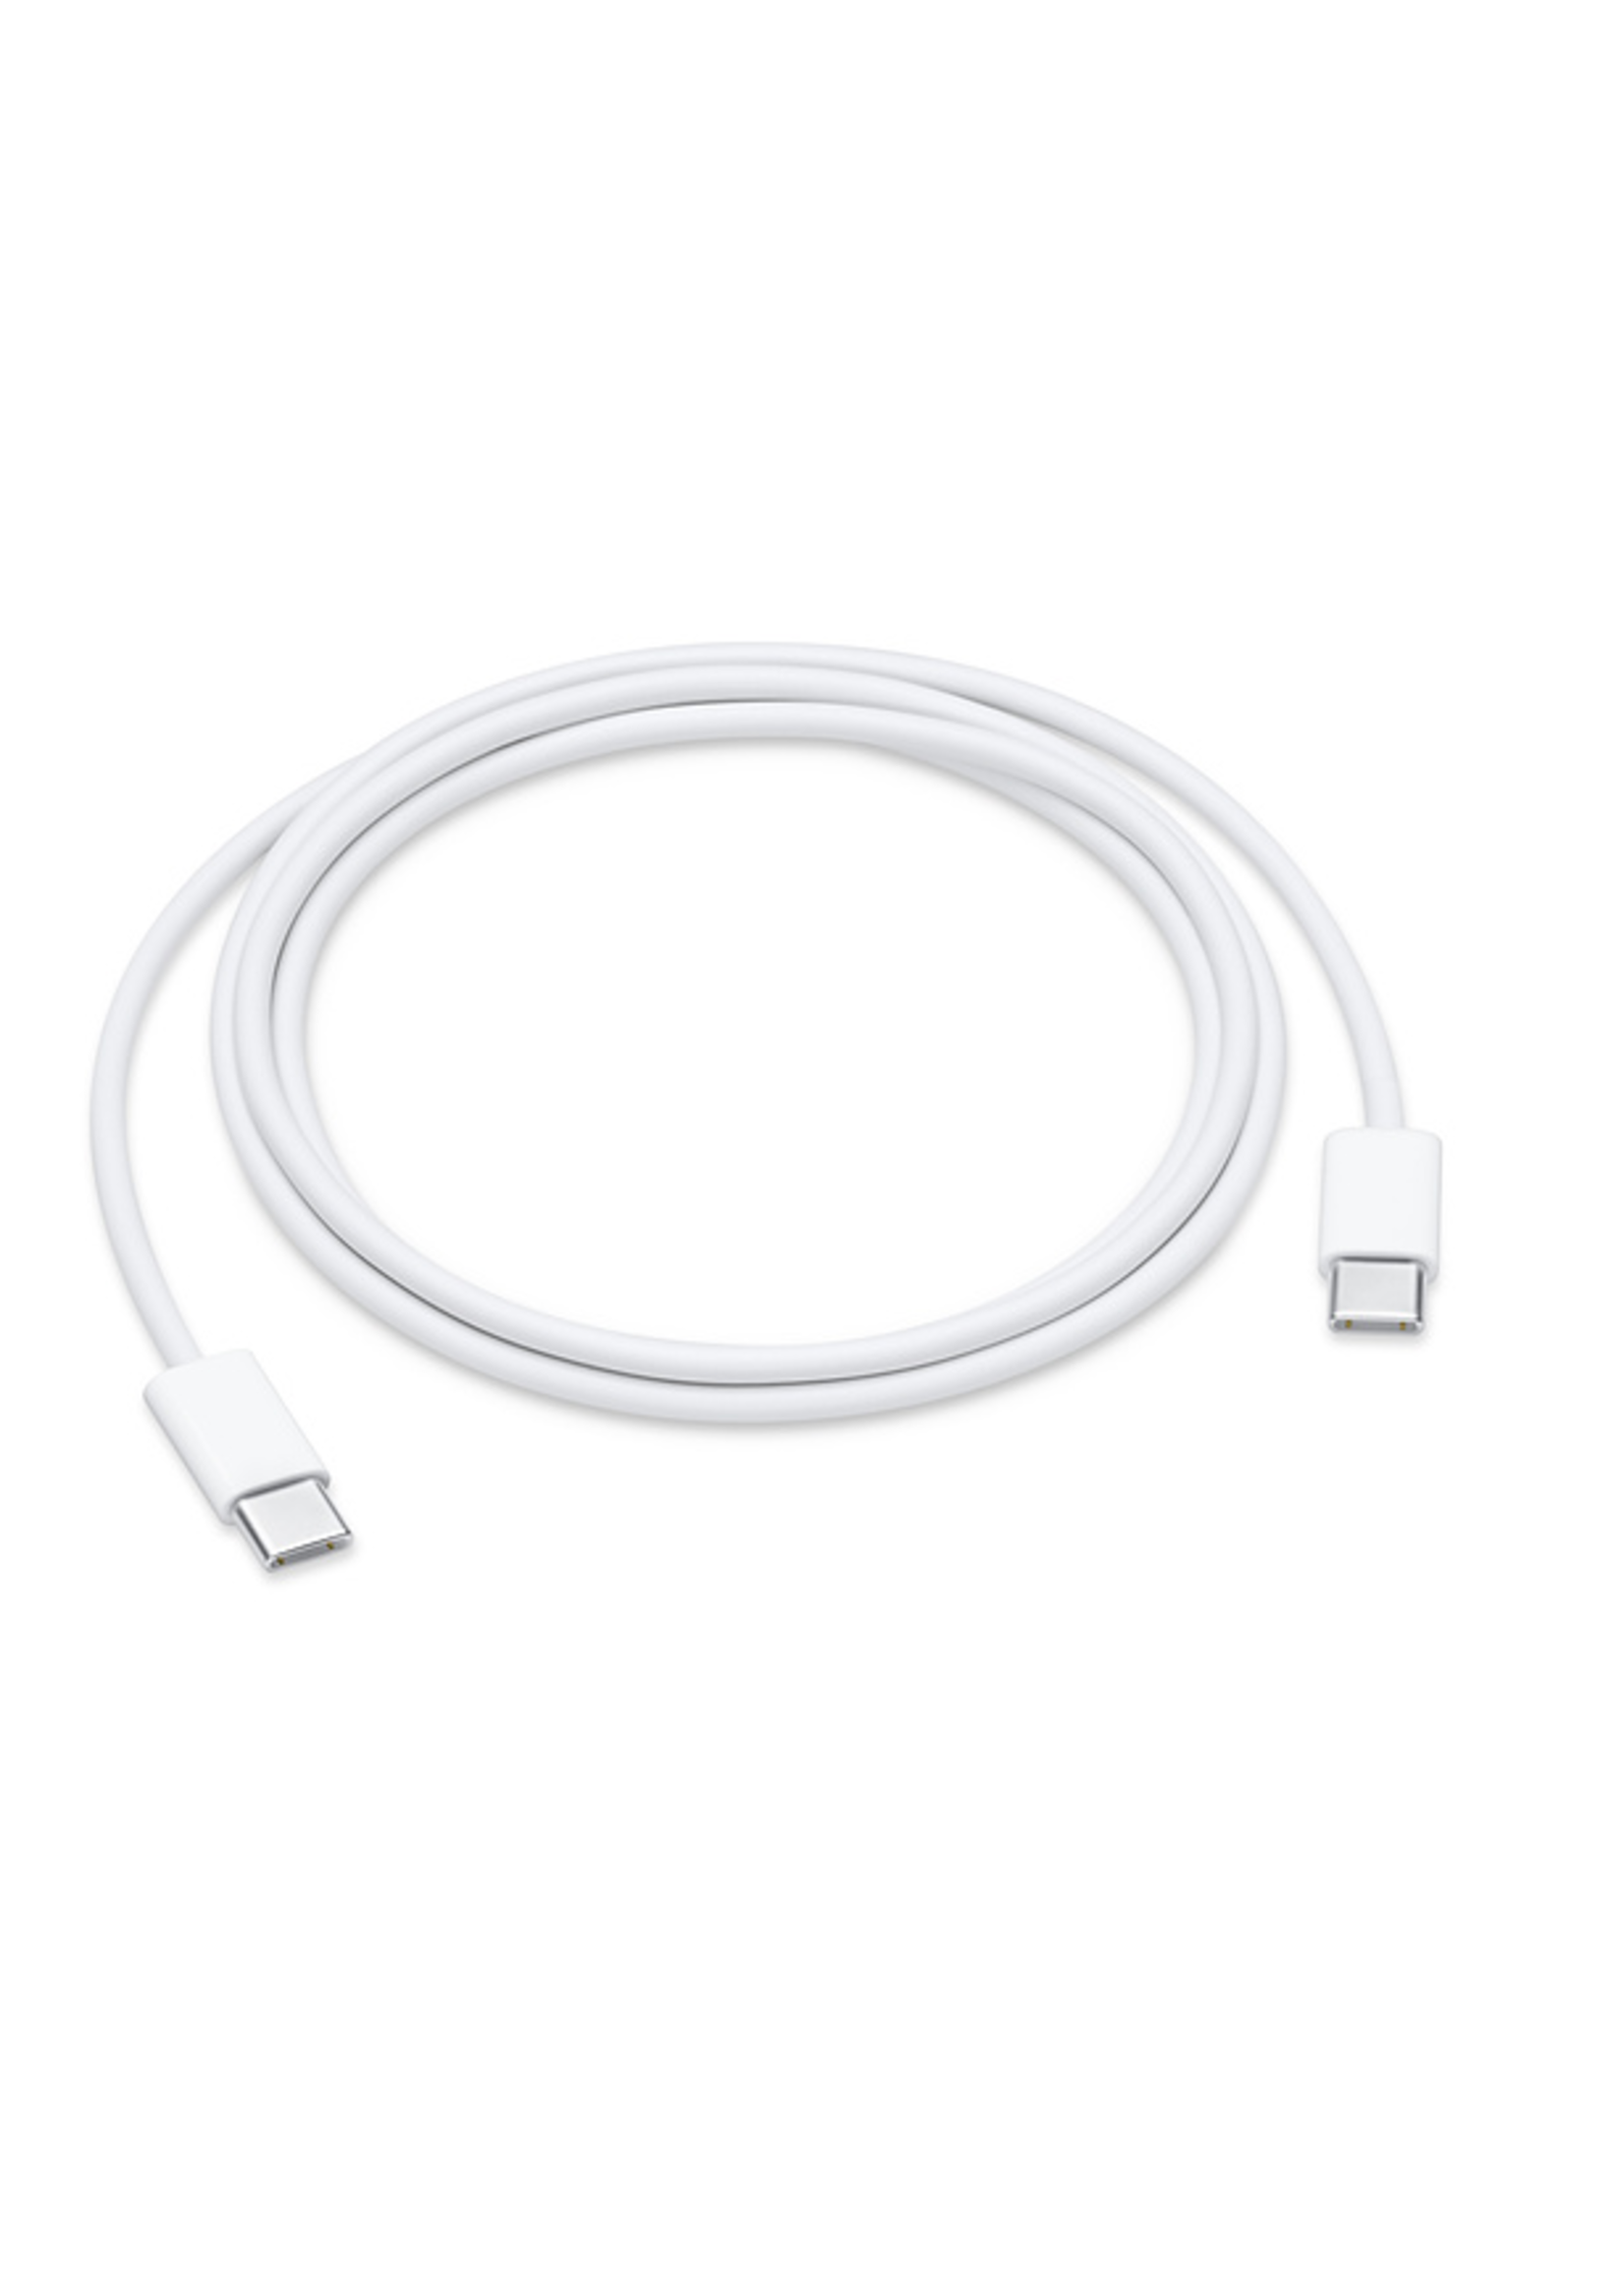 Apple USB-C Charge Cable (1m)